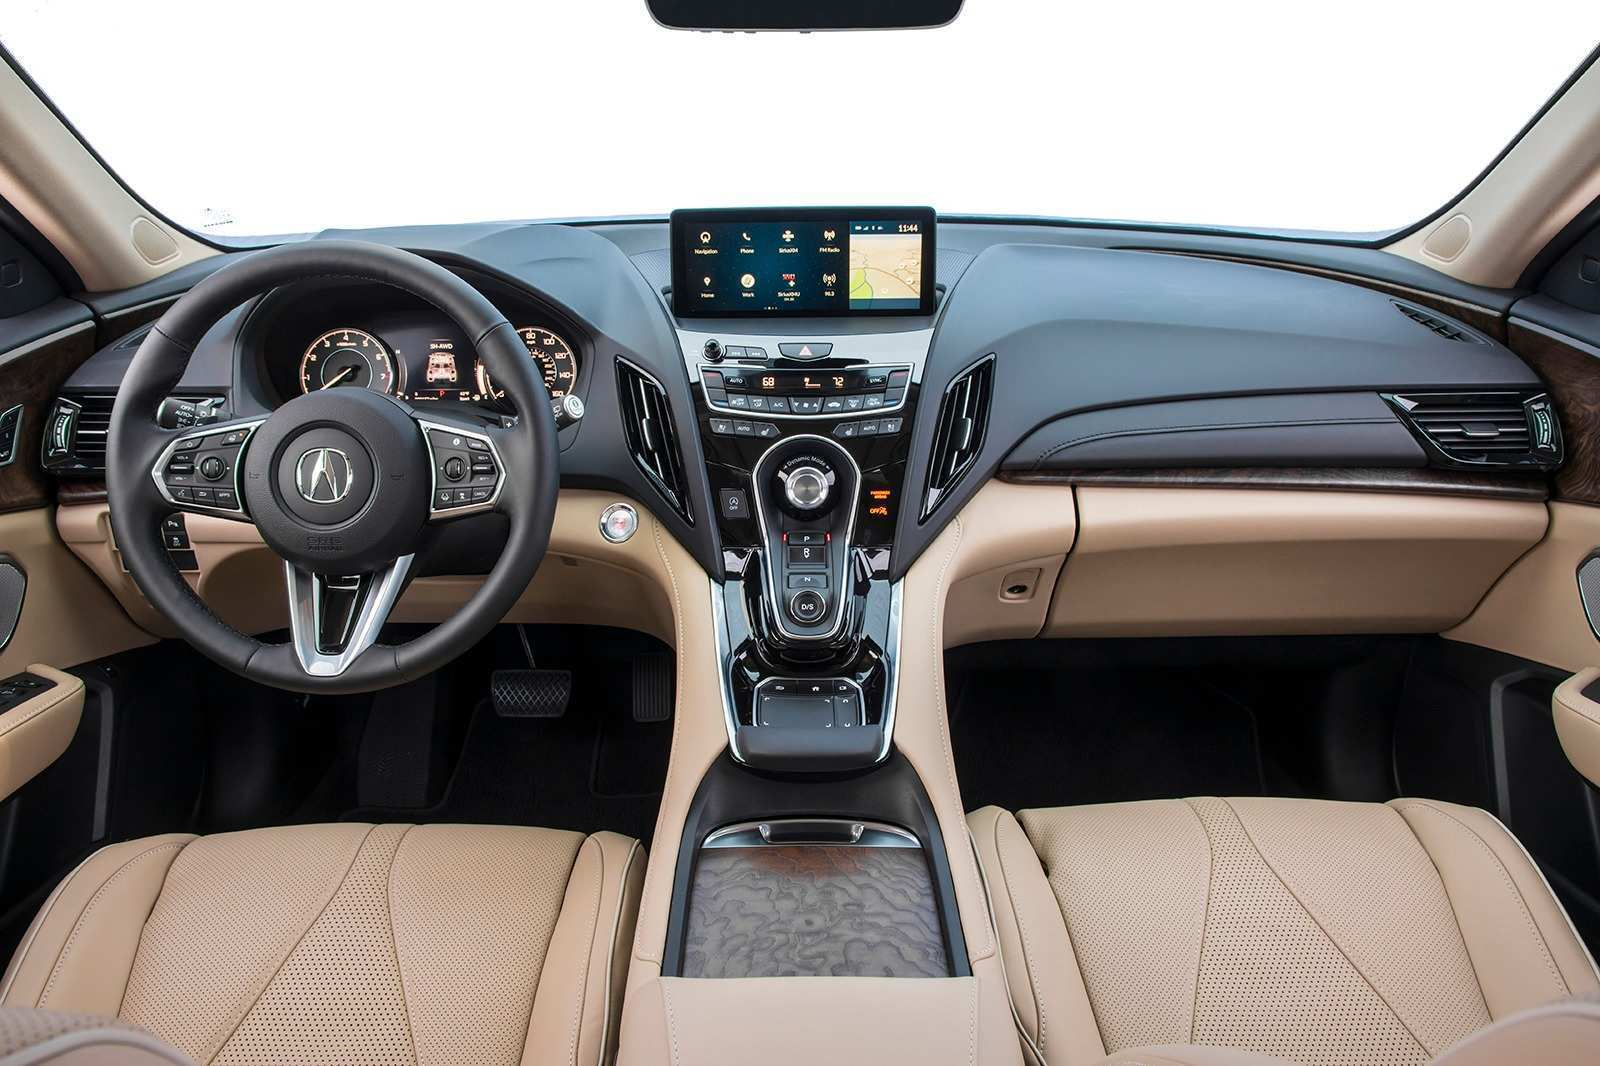 51 All New 2019 Acura Cars Pictures by 2019 Acura Cars